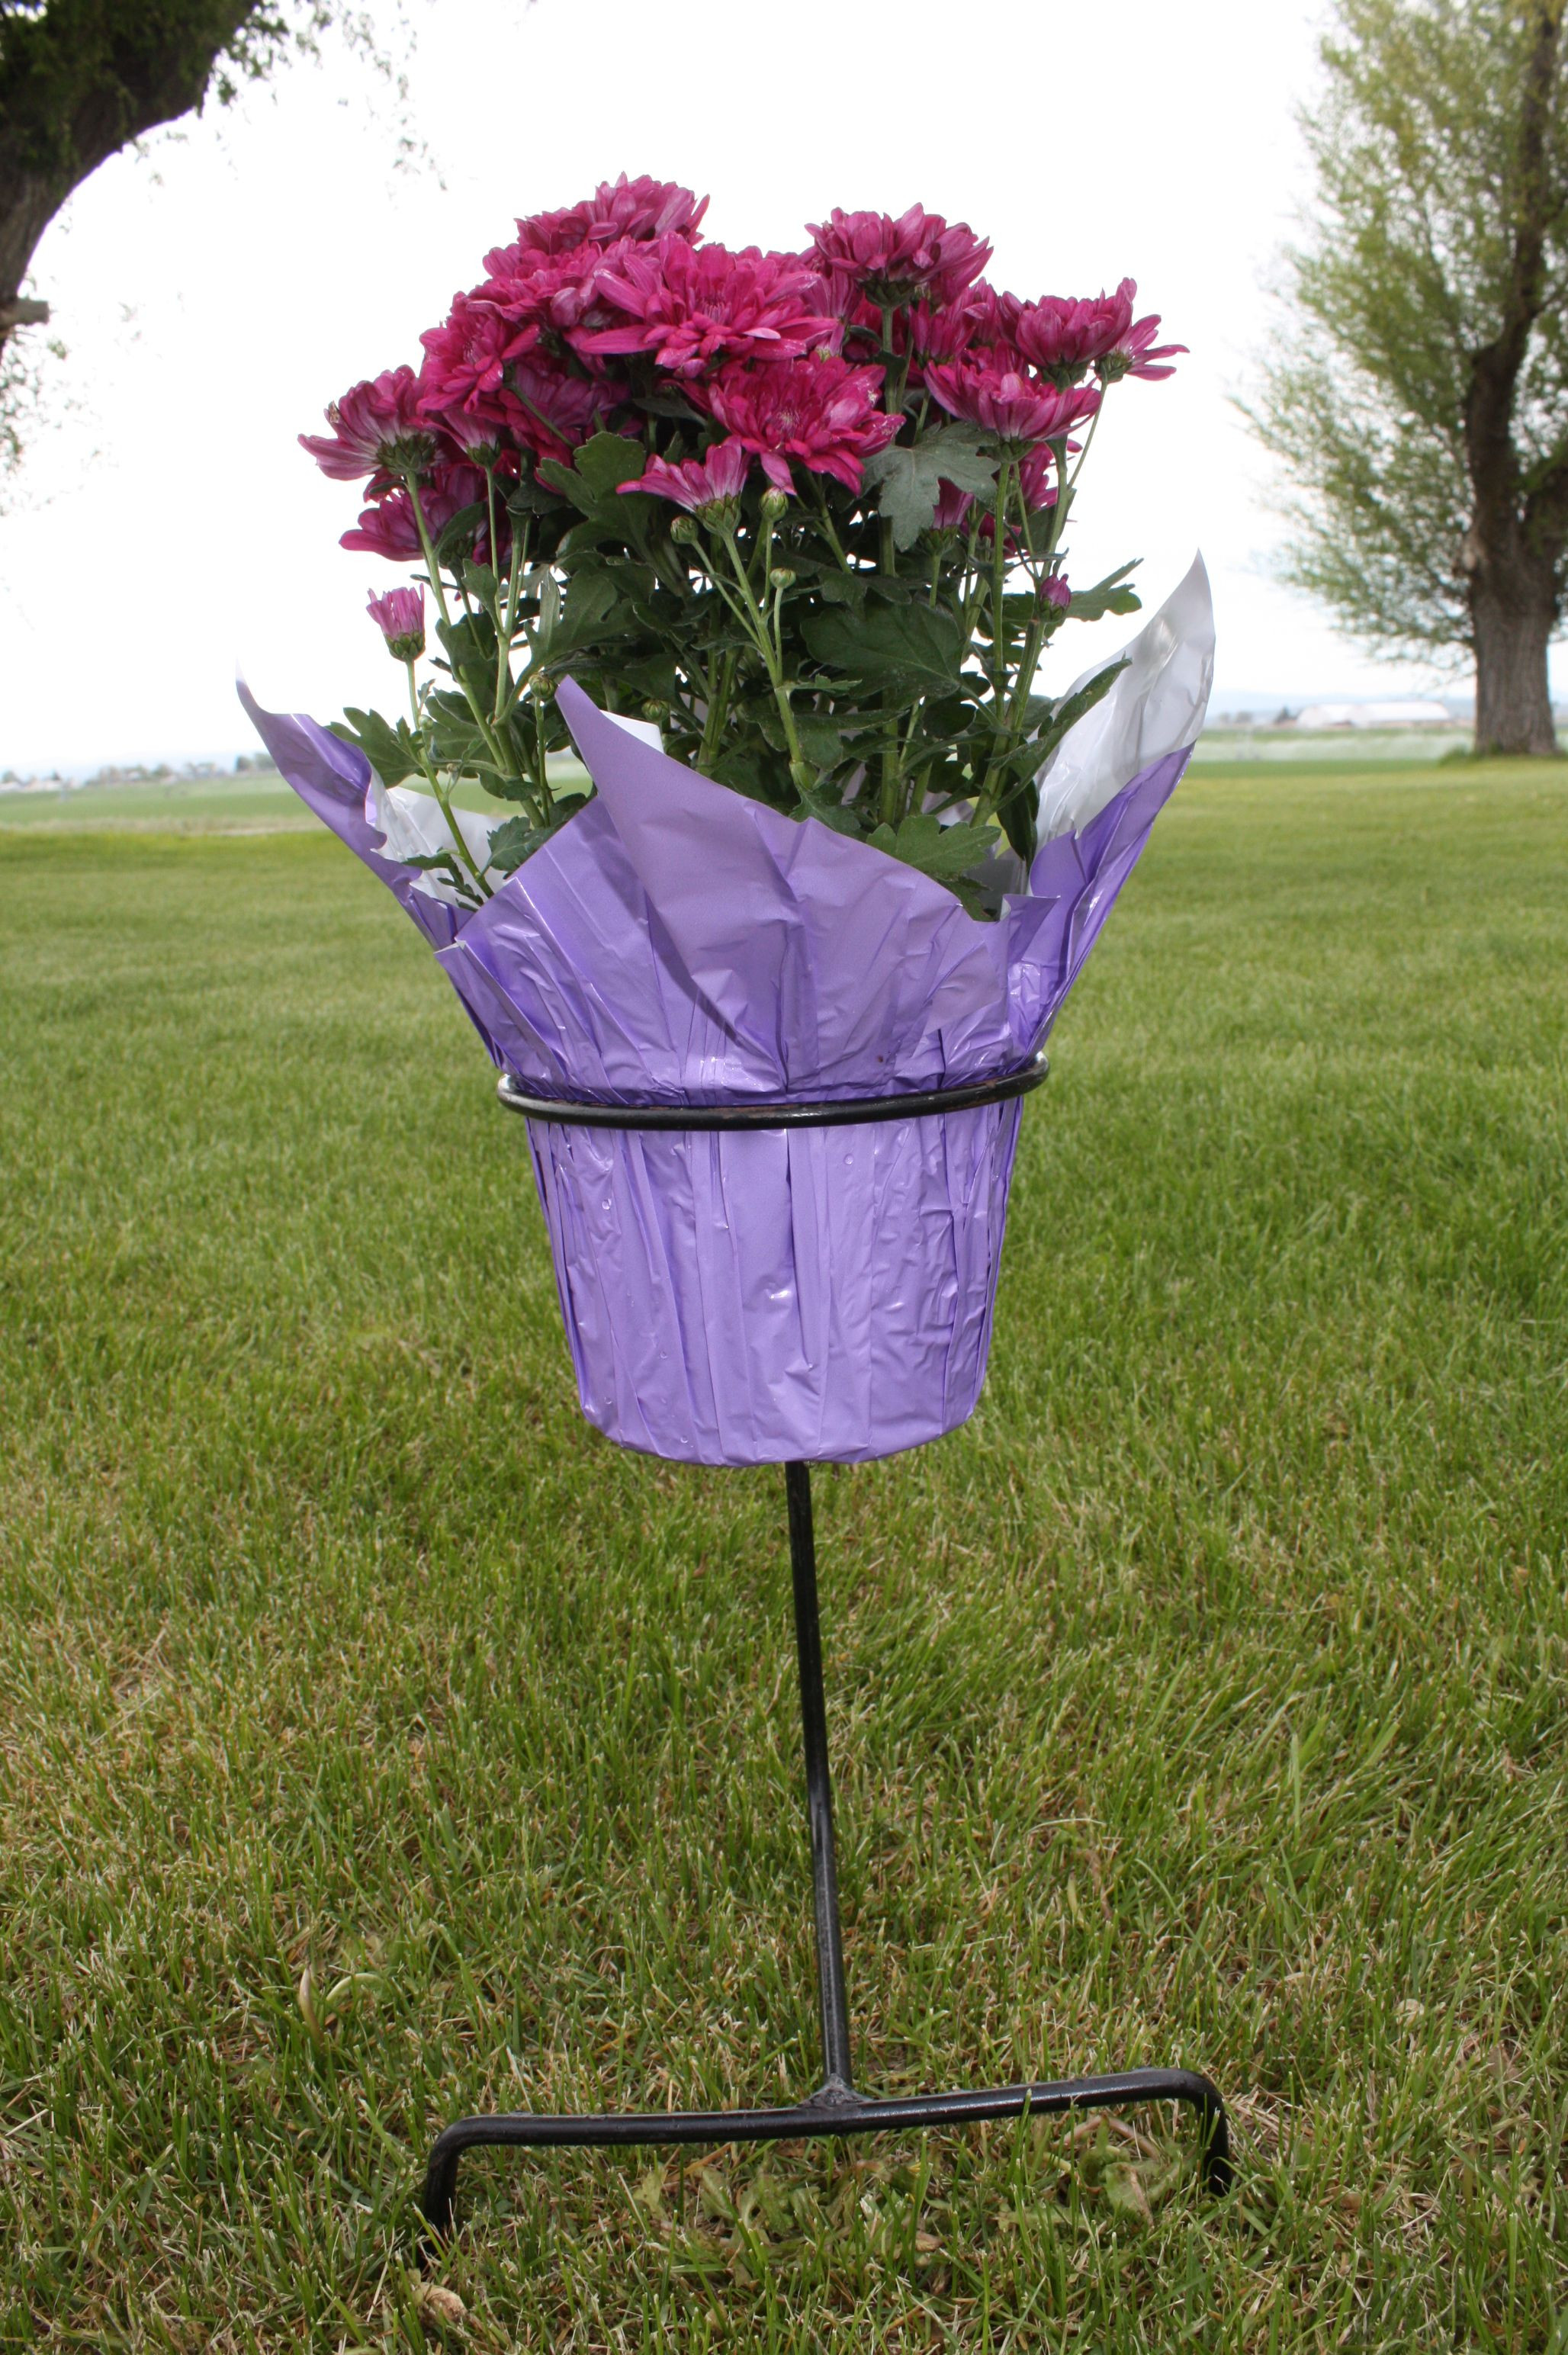 hobby lobby cemetery vases of rod iron flower pot holder keeps plant in place at the graveside or with rod iron flower pot holder keeps plant in place at the graveside or any place